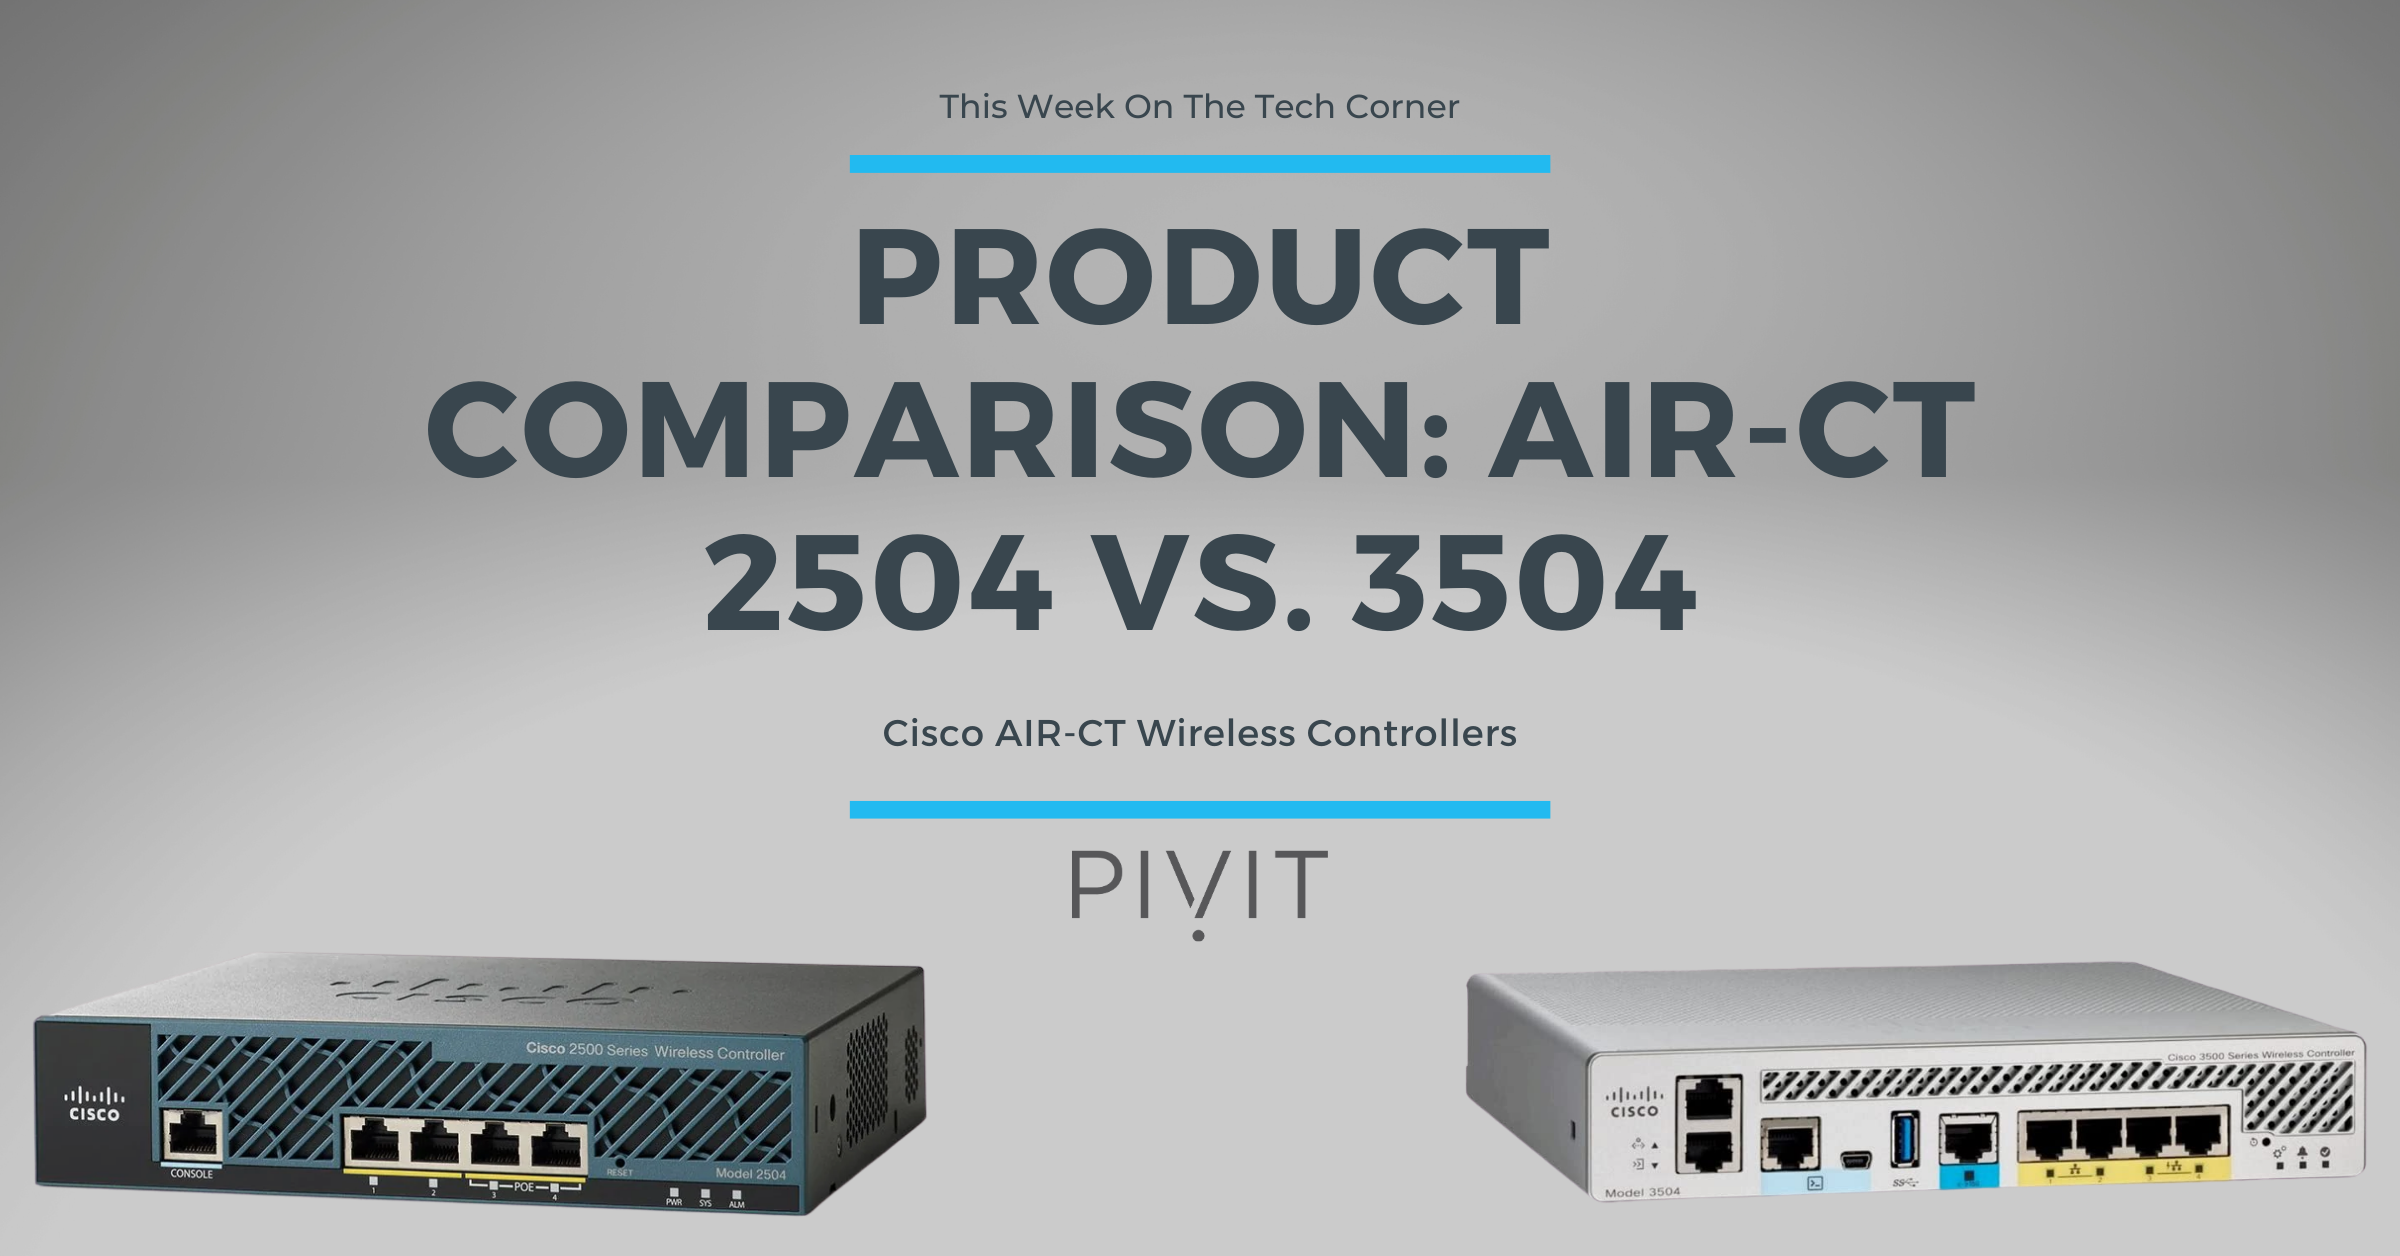 Product Comparison: AIR-CT 2504 vs. AIR-CT 3504 Wireless Controllers